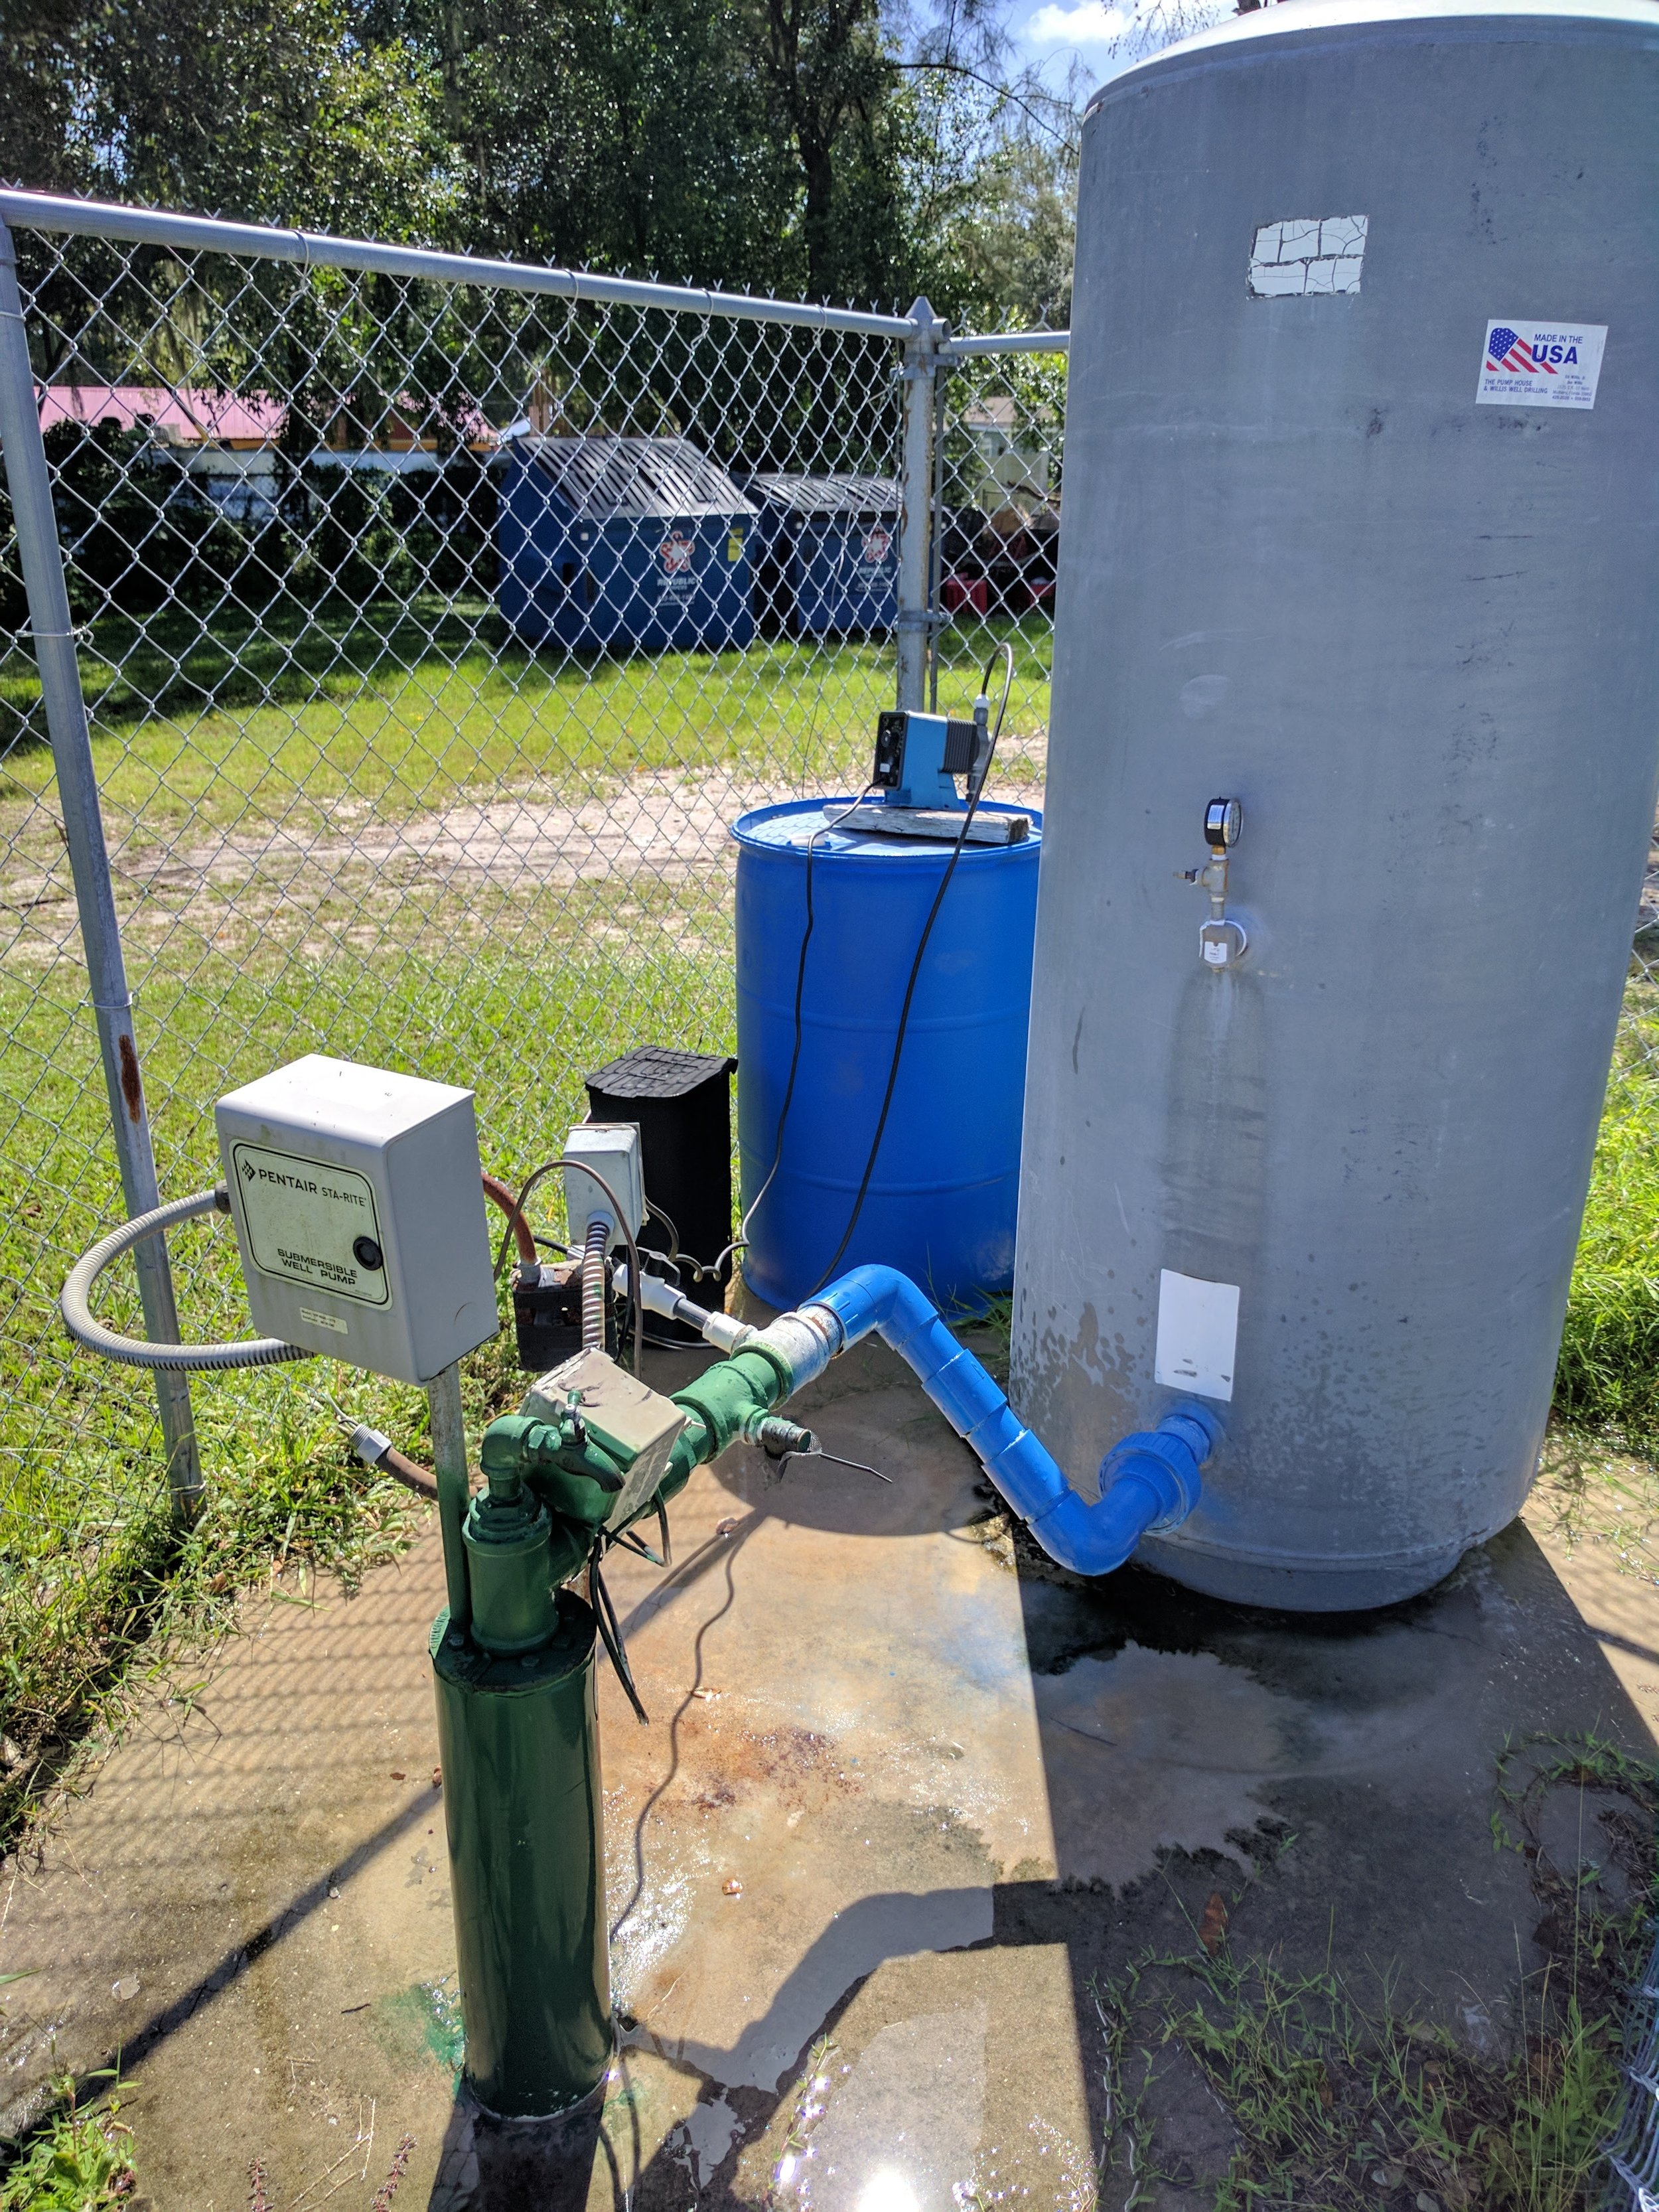 A small community water system (CWS) located in Polk County, FL that we have incorporated into previous research efforts.